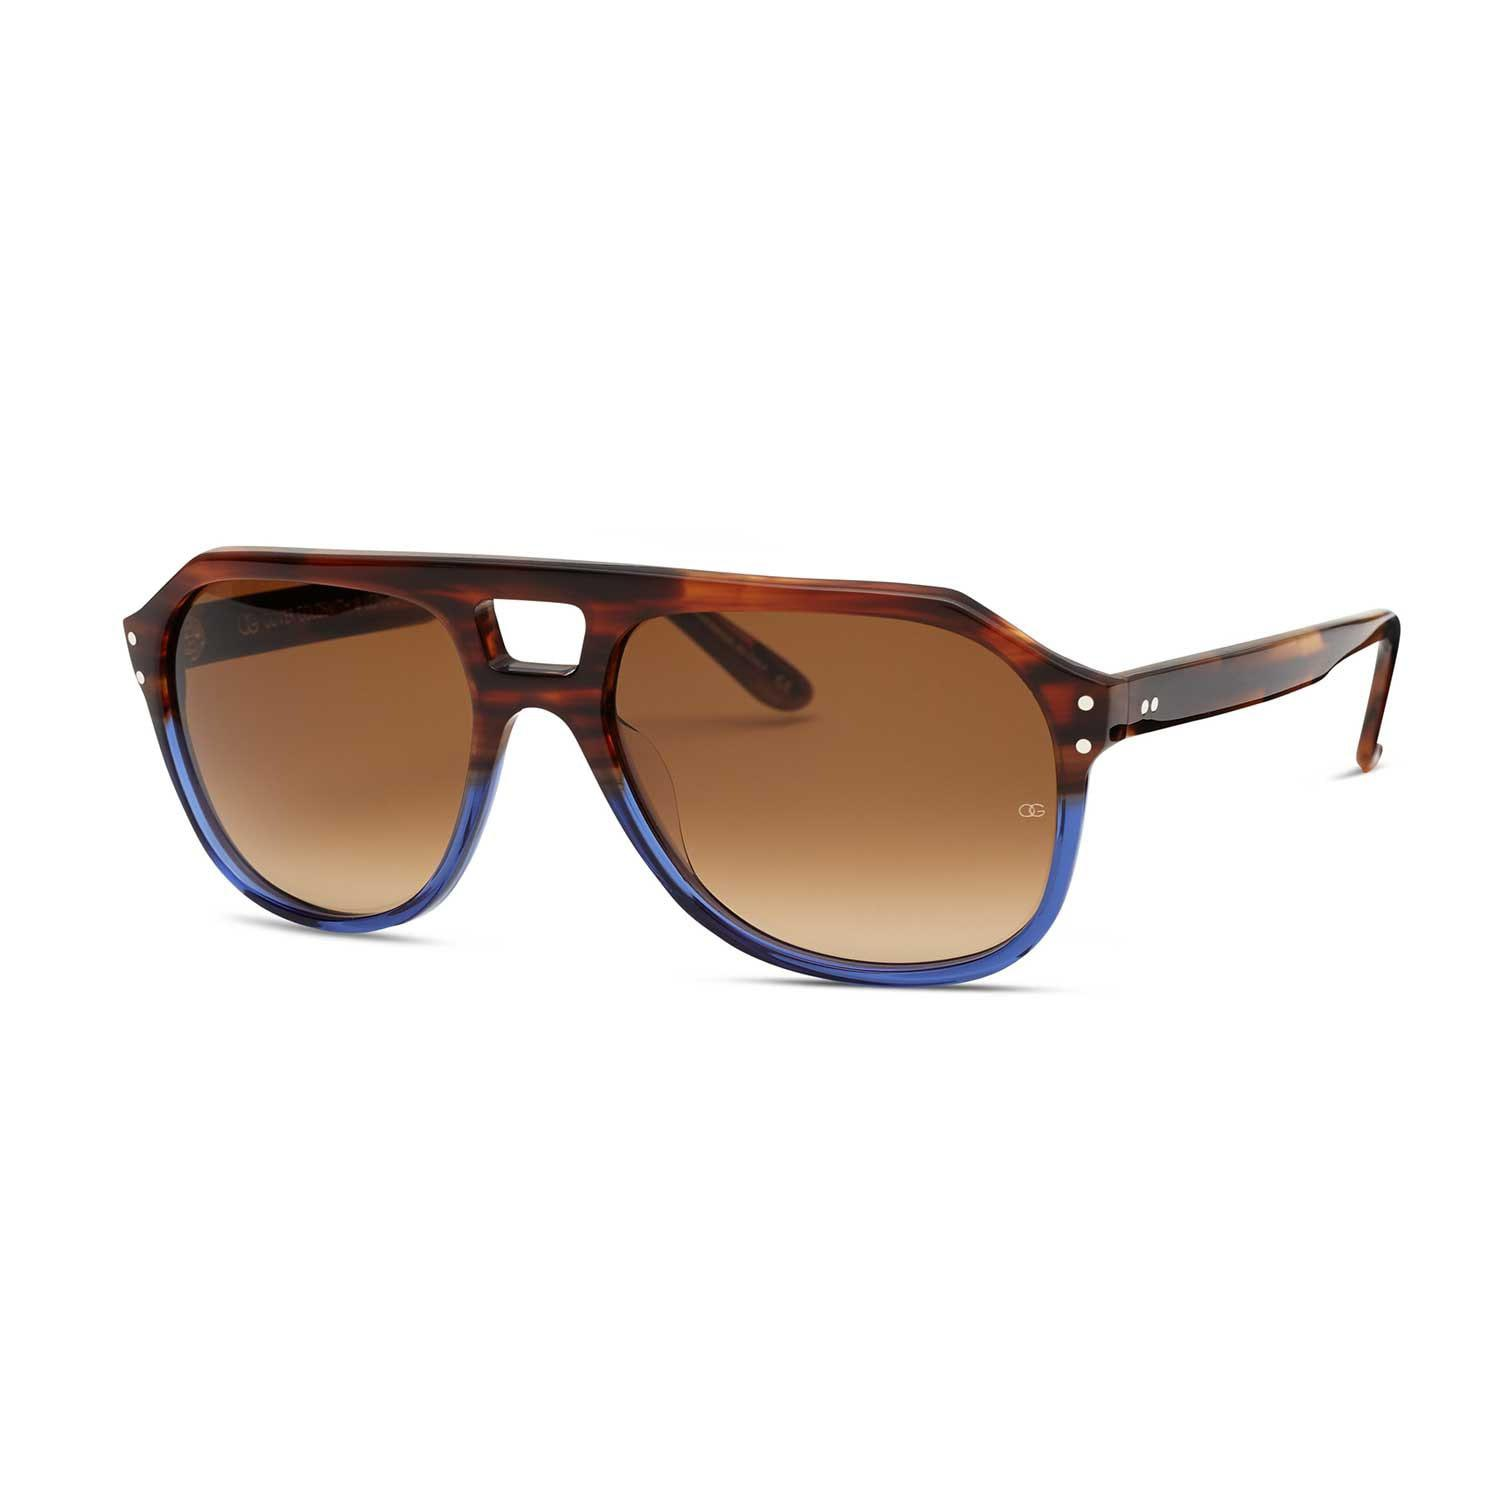 15ae3fac8001 Lyst - Oliver Goldsmith Glyn Blue Sea Bed in Brown for Men